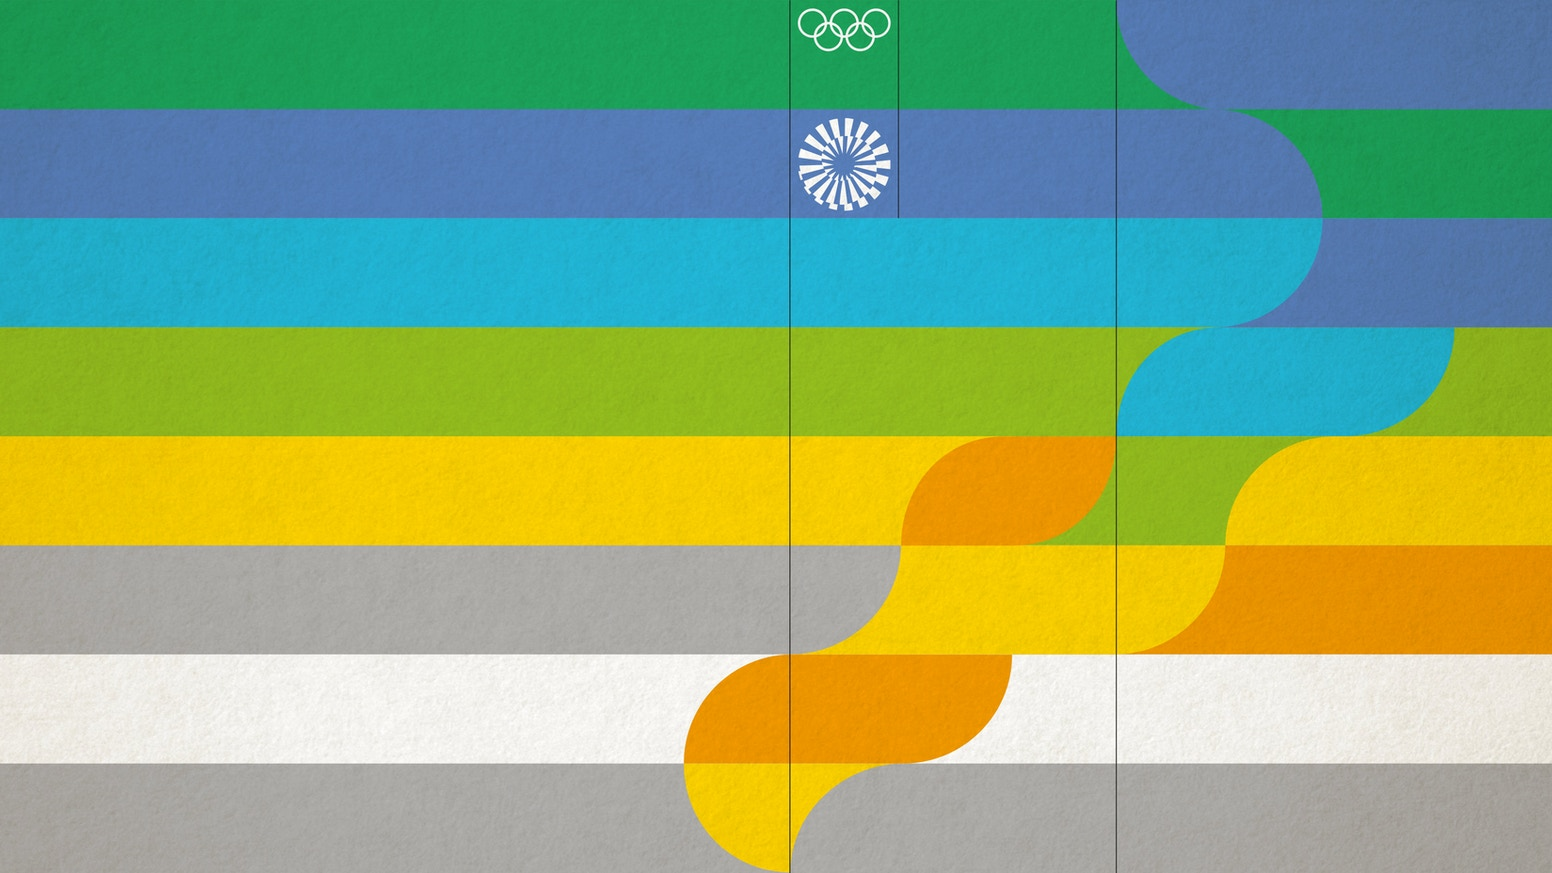 Reissue of the guidelines of the Olympic Games in original size and style. A tribute to Otl Aicher's pioneering work.